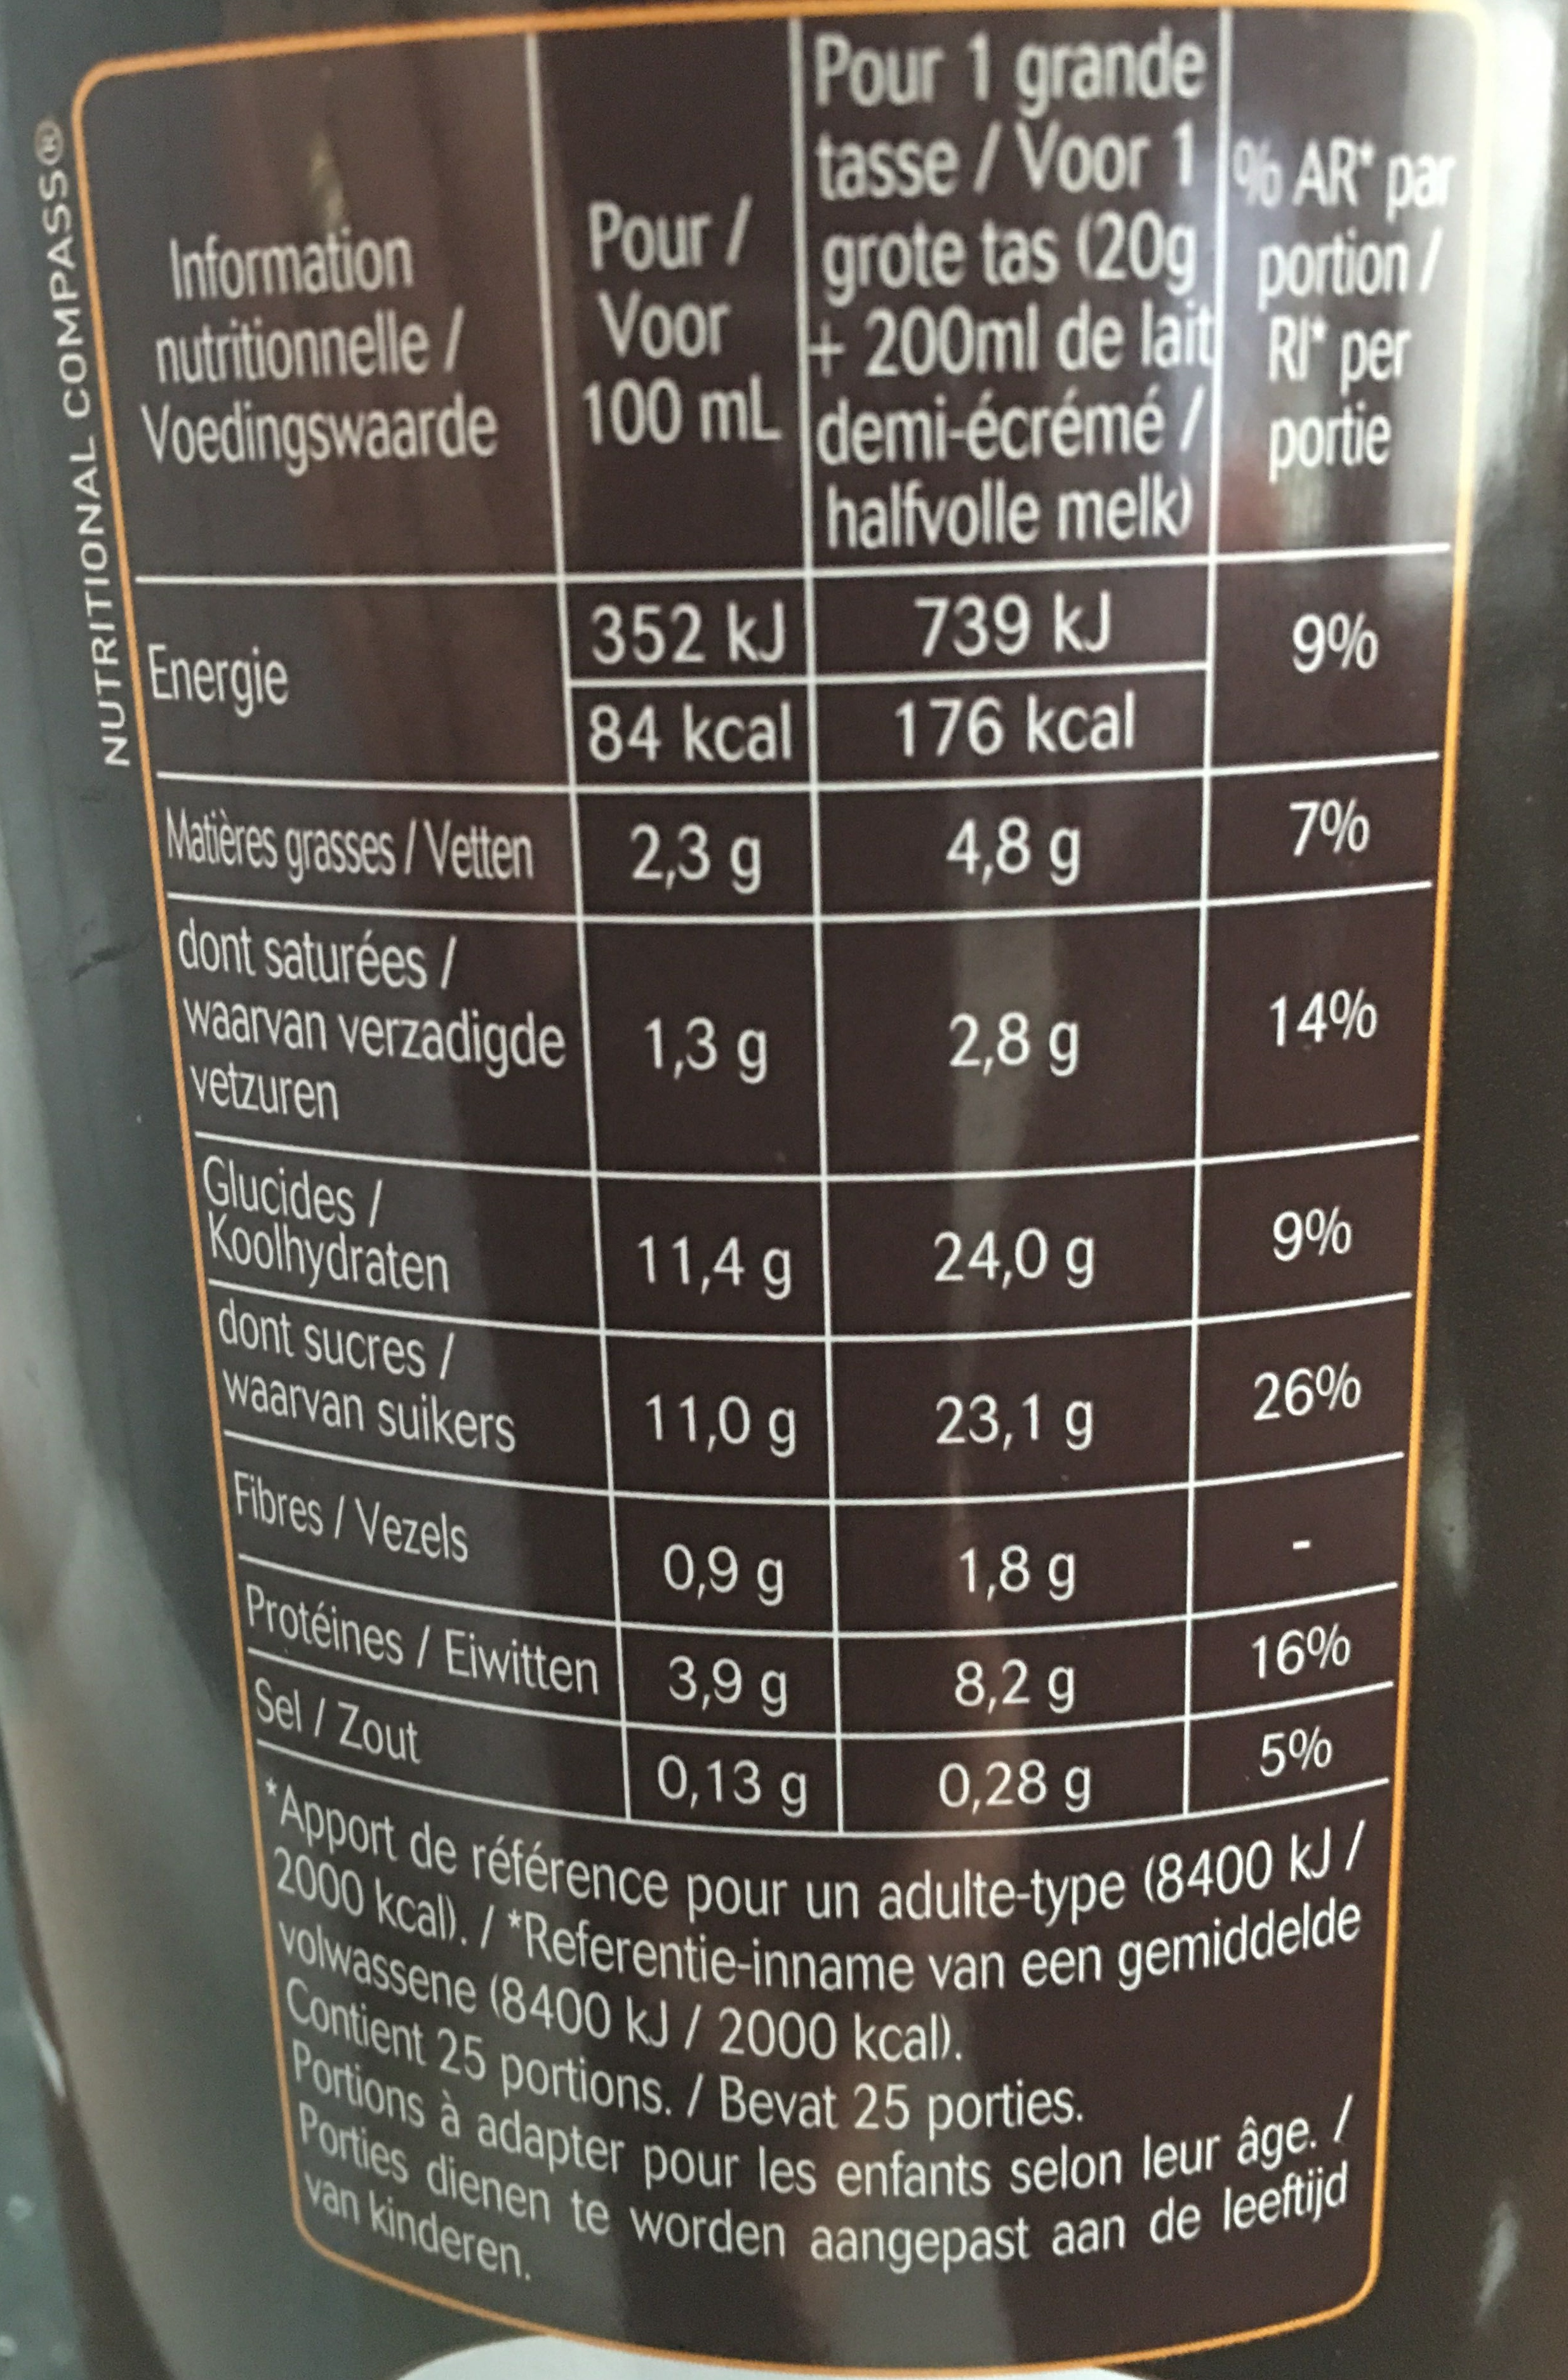 Le chocolat - Nutrition facts